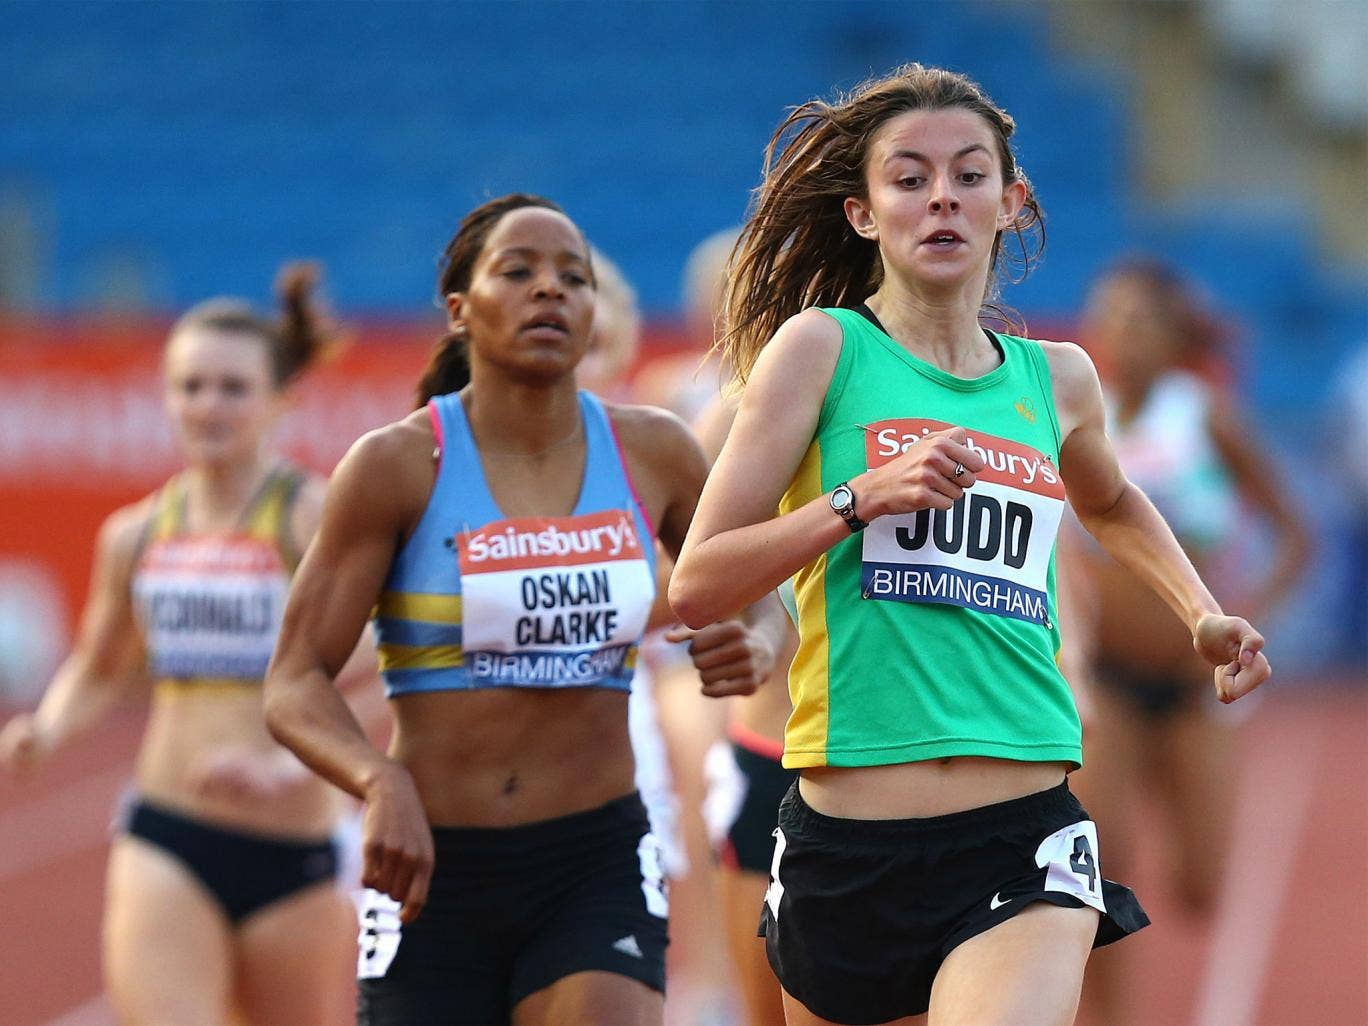 Judd's rise this summer has been spectacular and while Rio 2016 or even the 2020 Olympics are more realistic targets for the 8-year-old, her achievements this year already mark her out